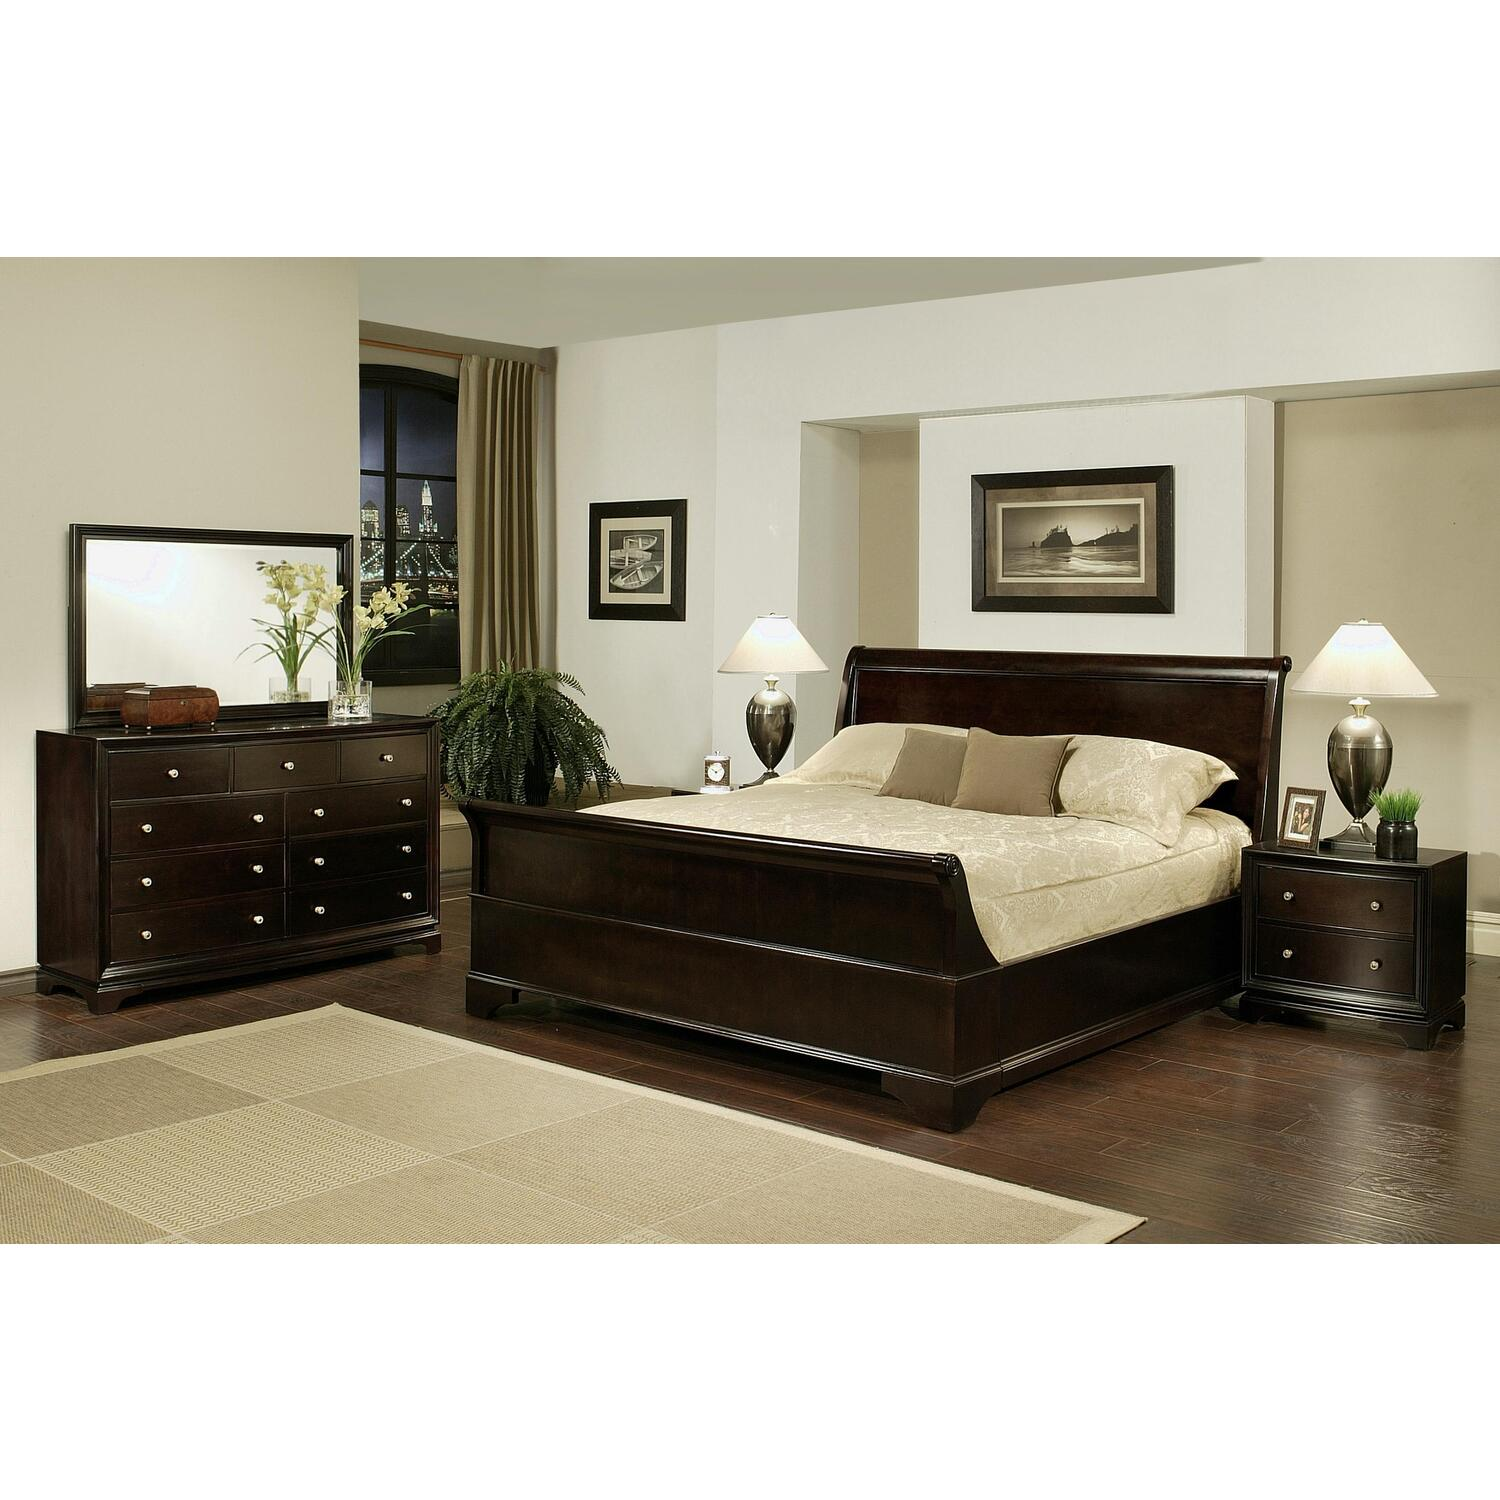 Abbyson living 5 piece sleigh queen size bedroom set by oj for 3 bedroom set